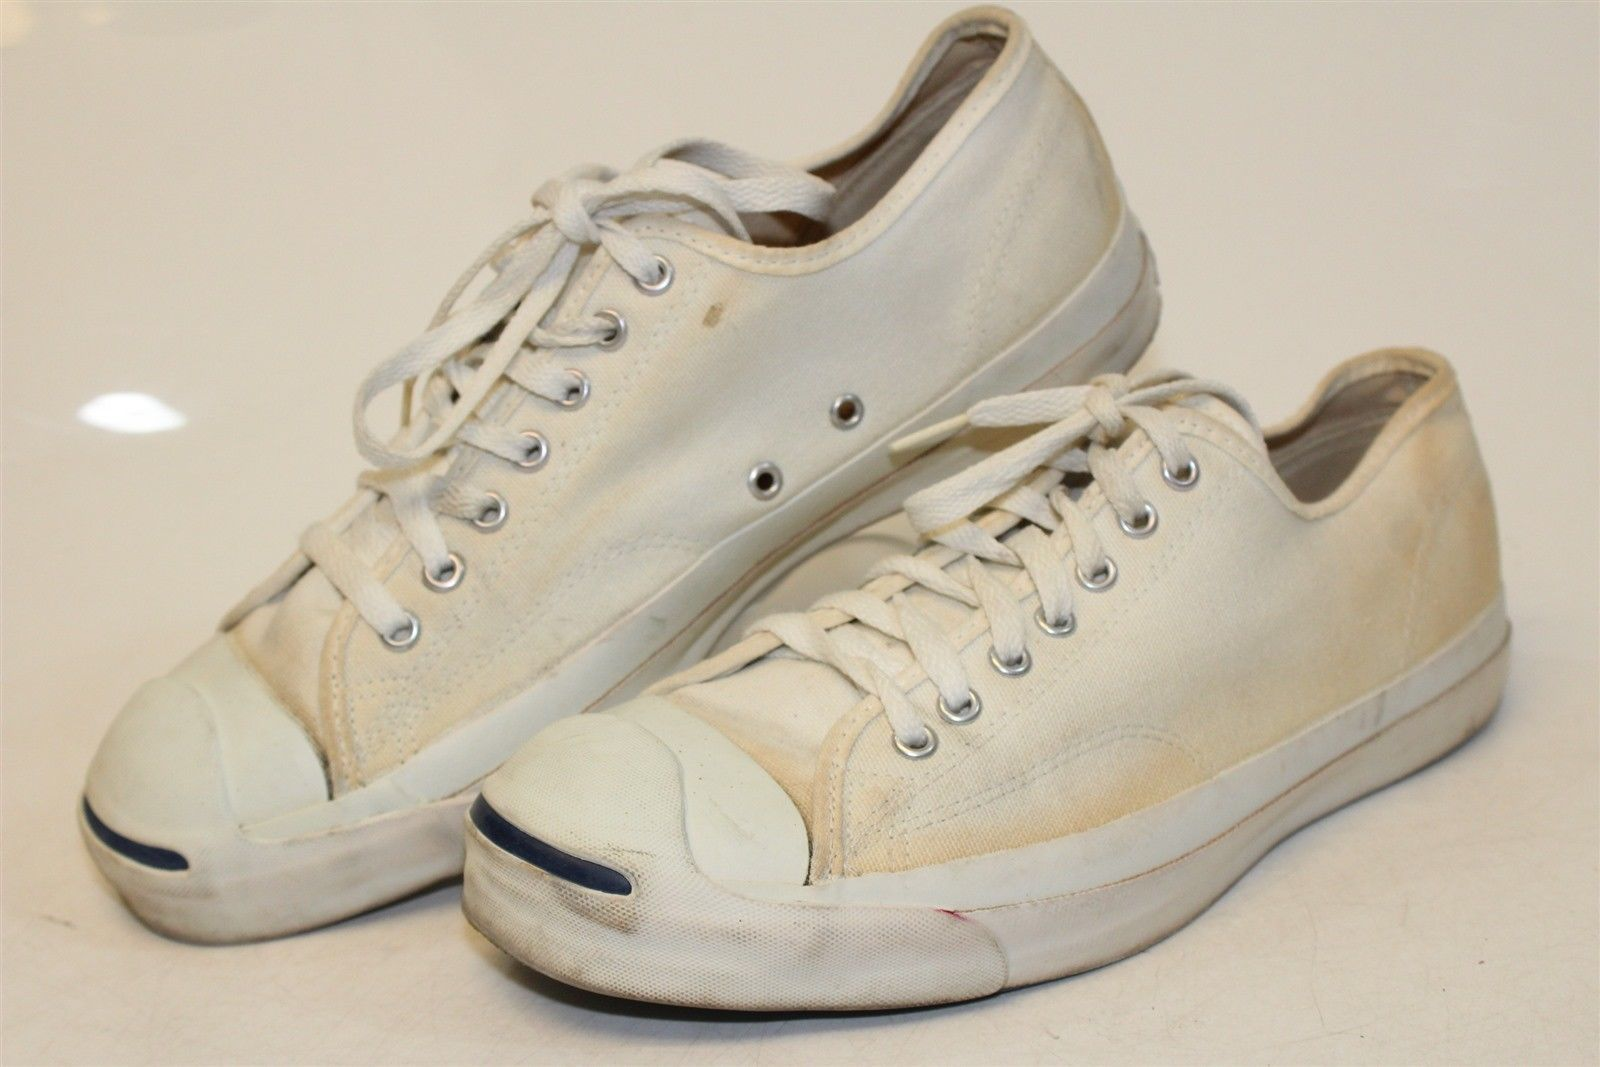 2292c077d0a1 Vintage Converse Jack Purcell USA Made Men s 11 Canvas Low Tops Sneakers  Shoes kk